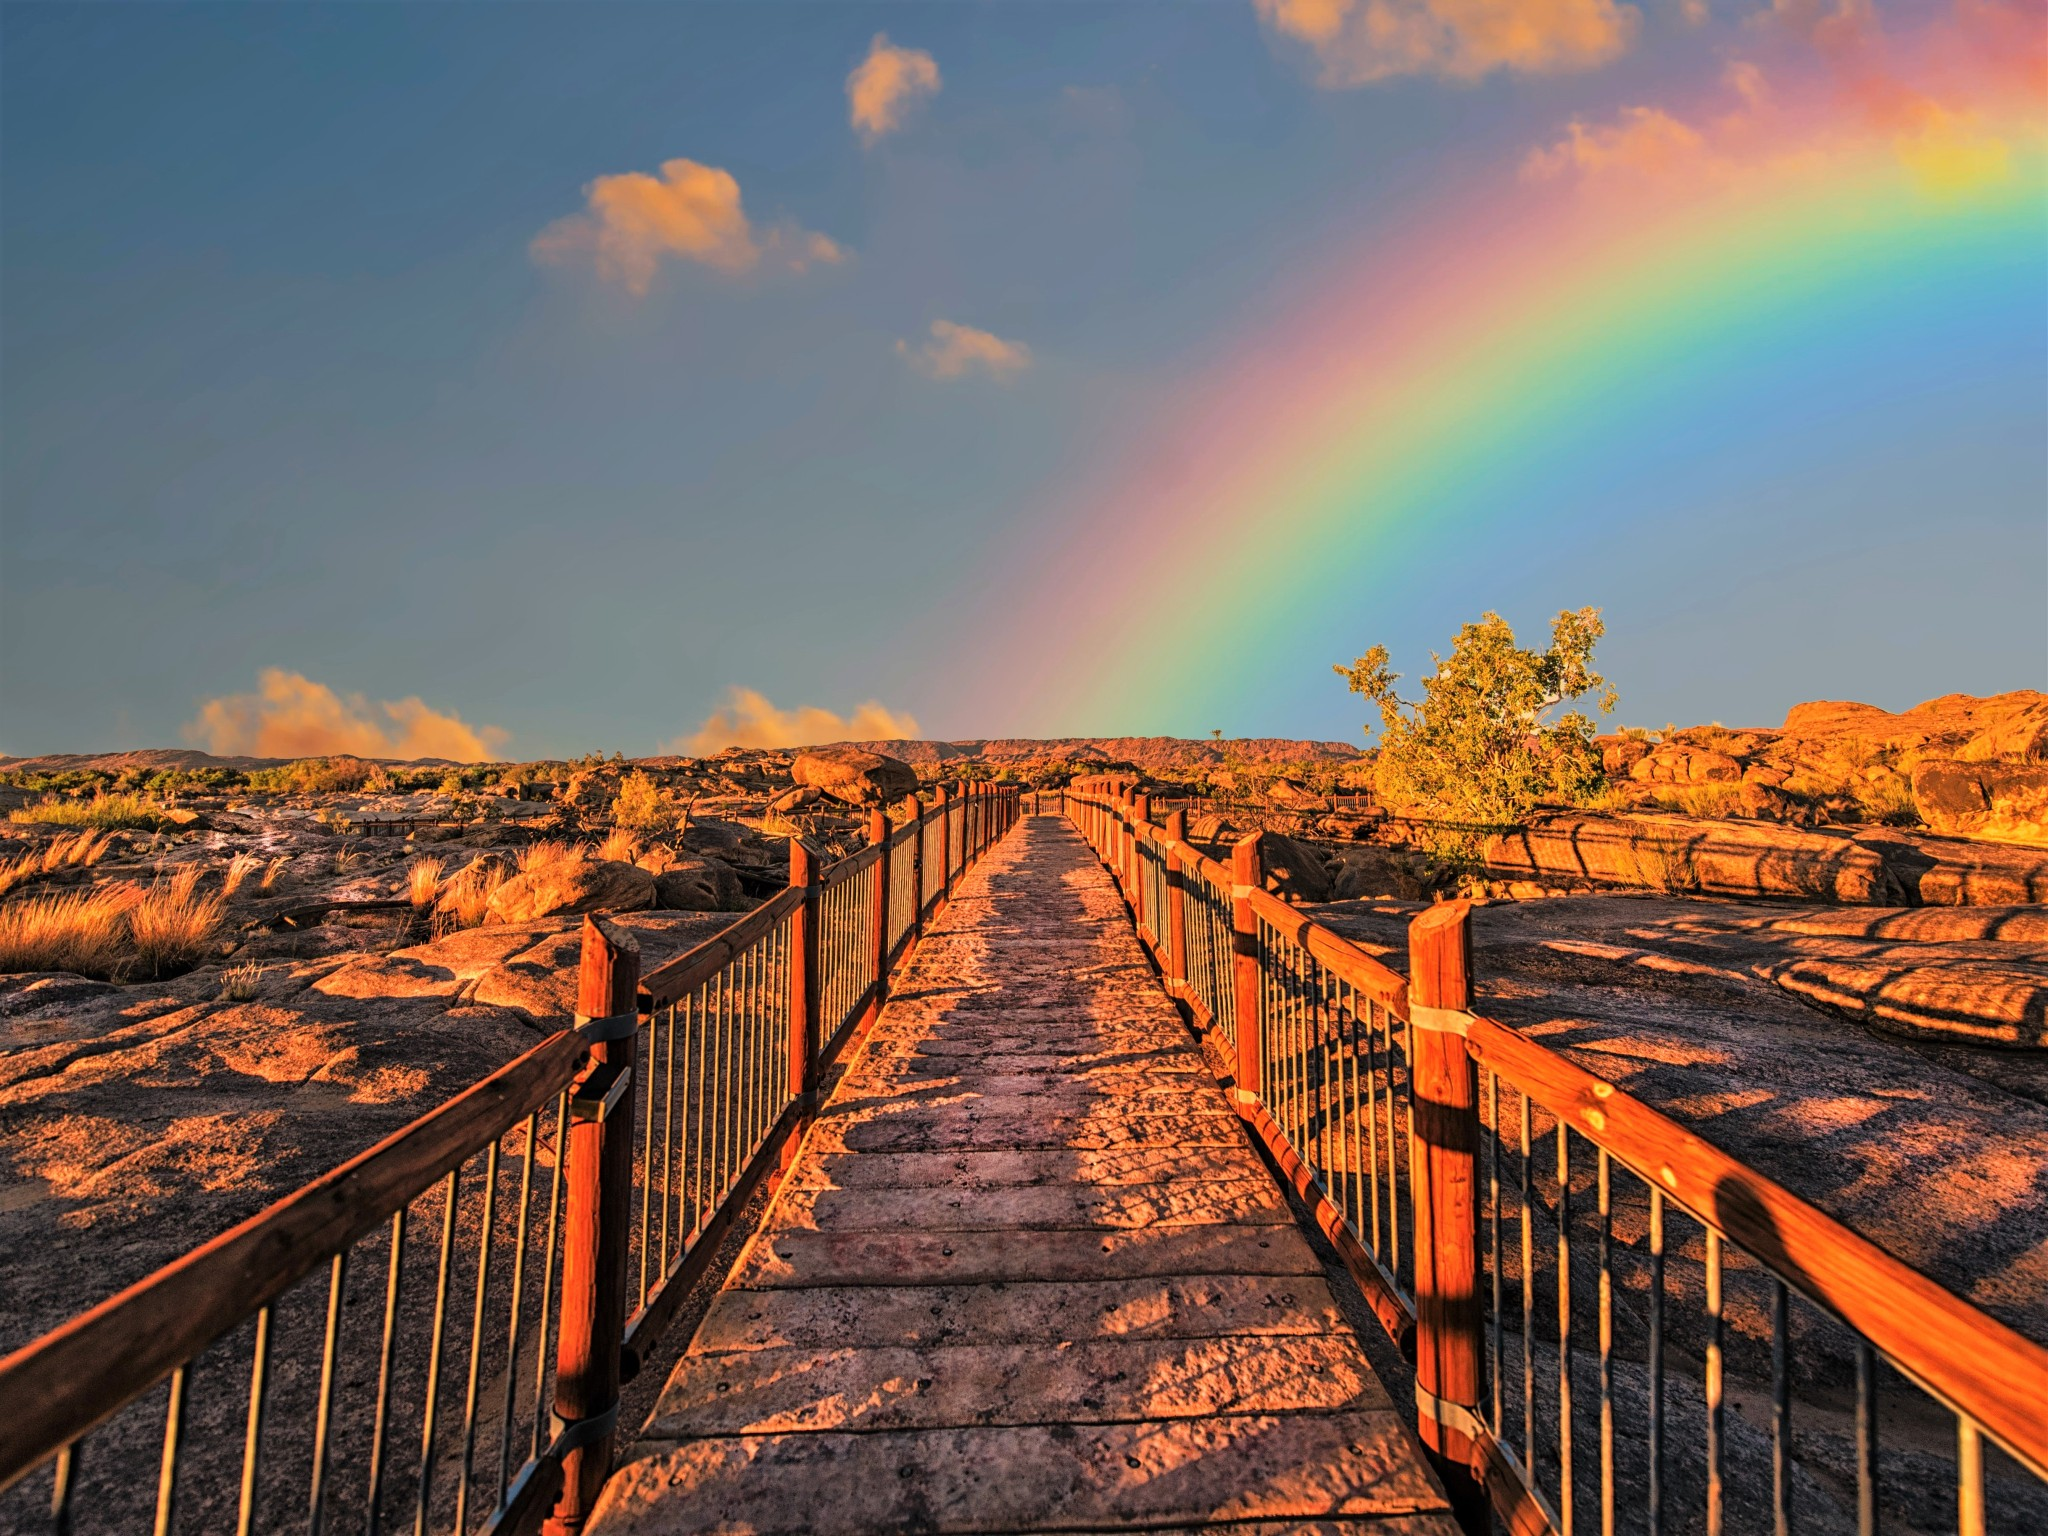 Dark barren path with a colourful rainbow rising from the horizon.